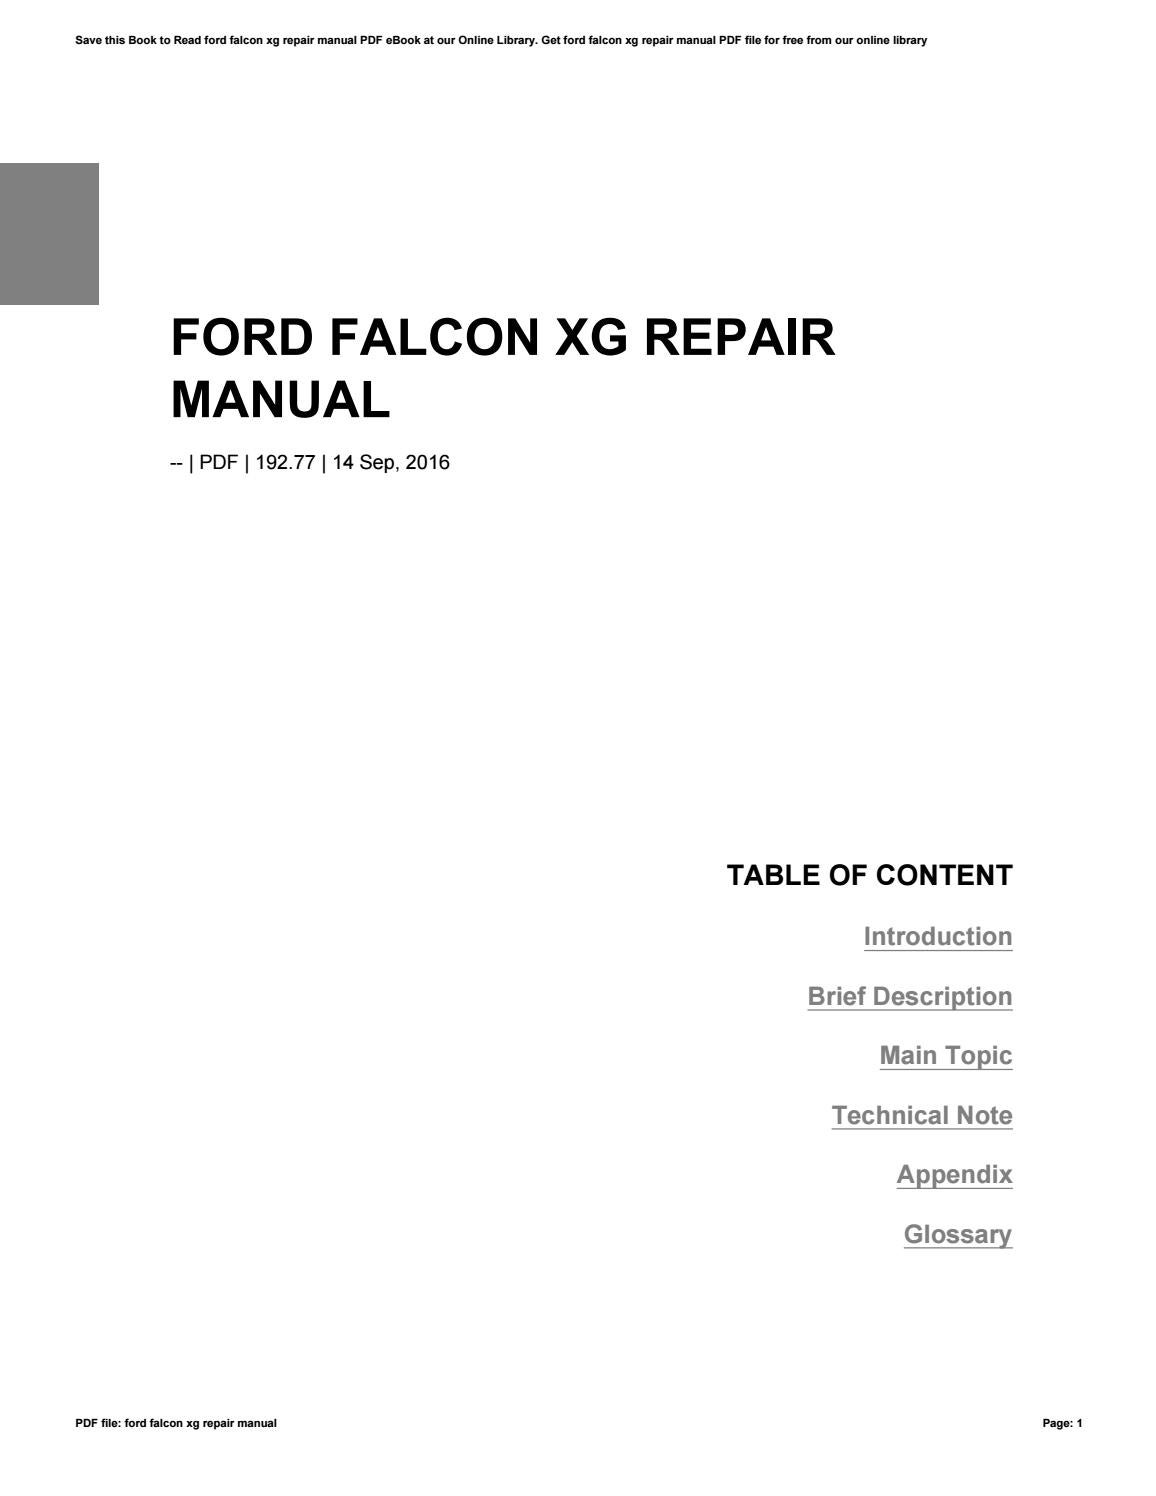 ... Array - ford falcon xg repair manual by jklasdf283 issuu rh issuu ...